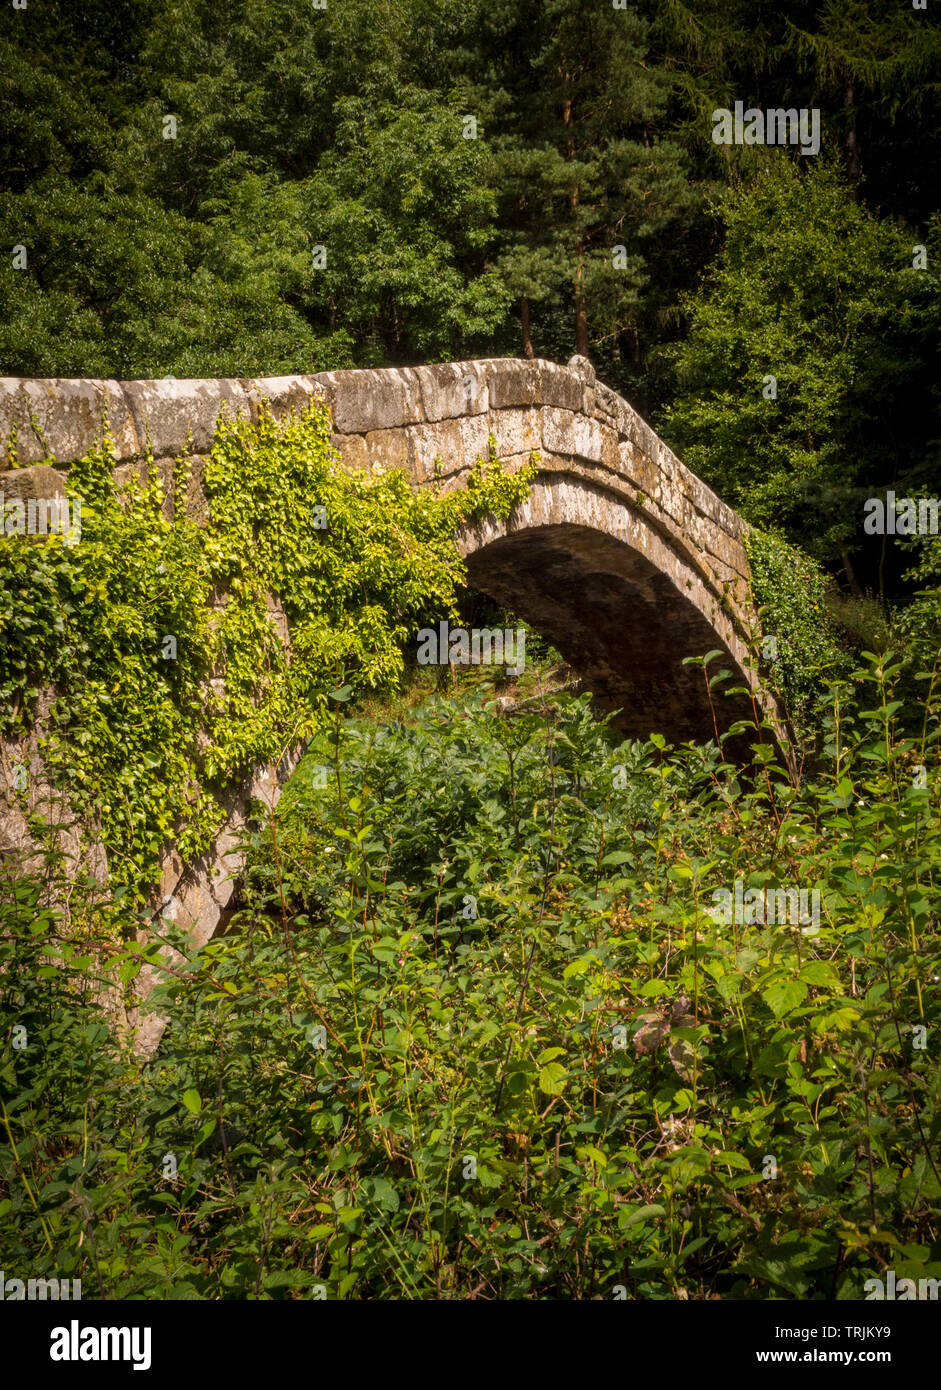 Beggar's Bridge over the River Esk, Glaisdale, North Yorkshire Moors - Stock Image